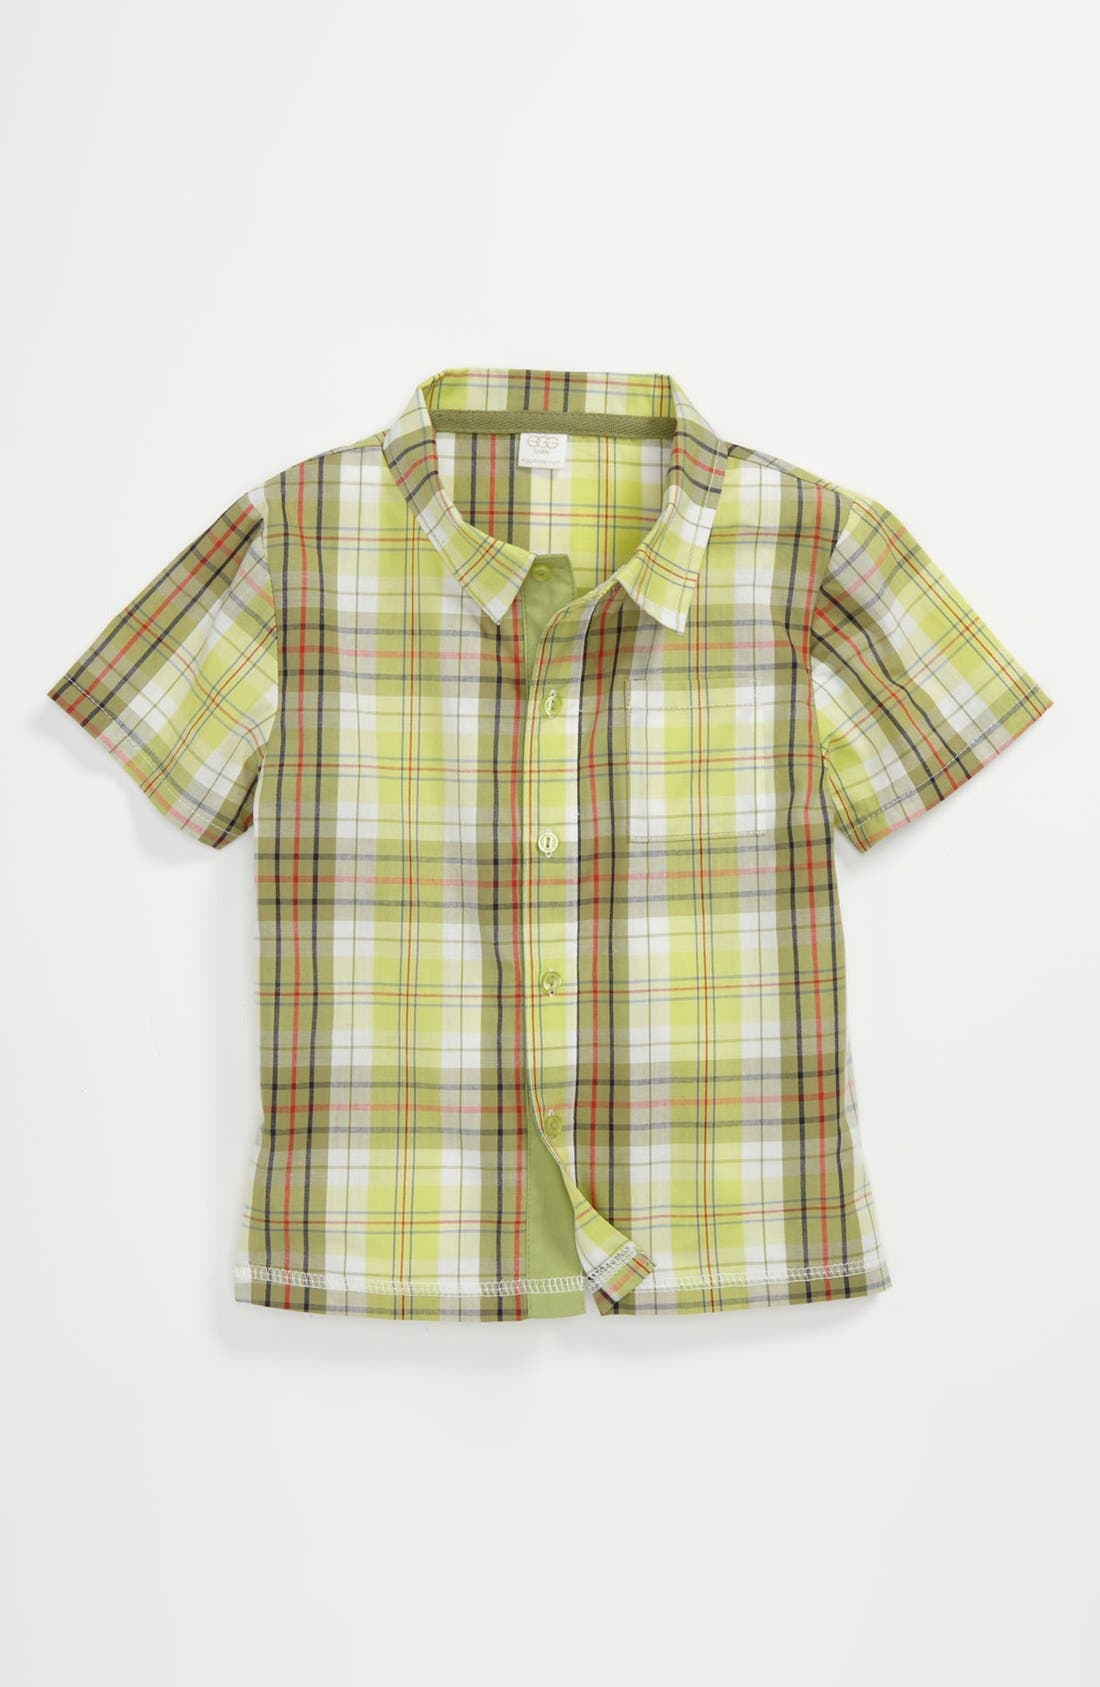 Alternate Image 1 Selected - egg by susan lazar Woven Shirt (Toddler)